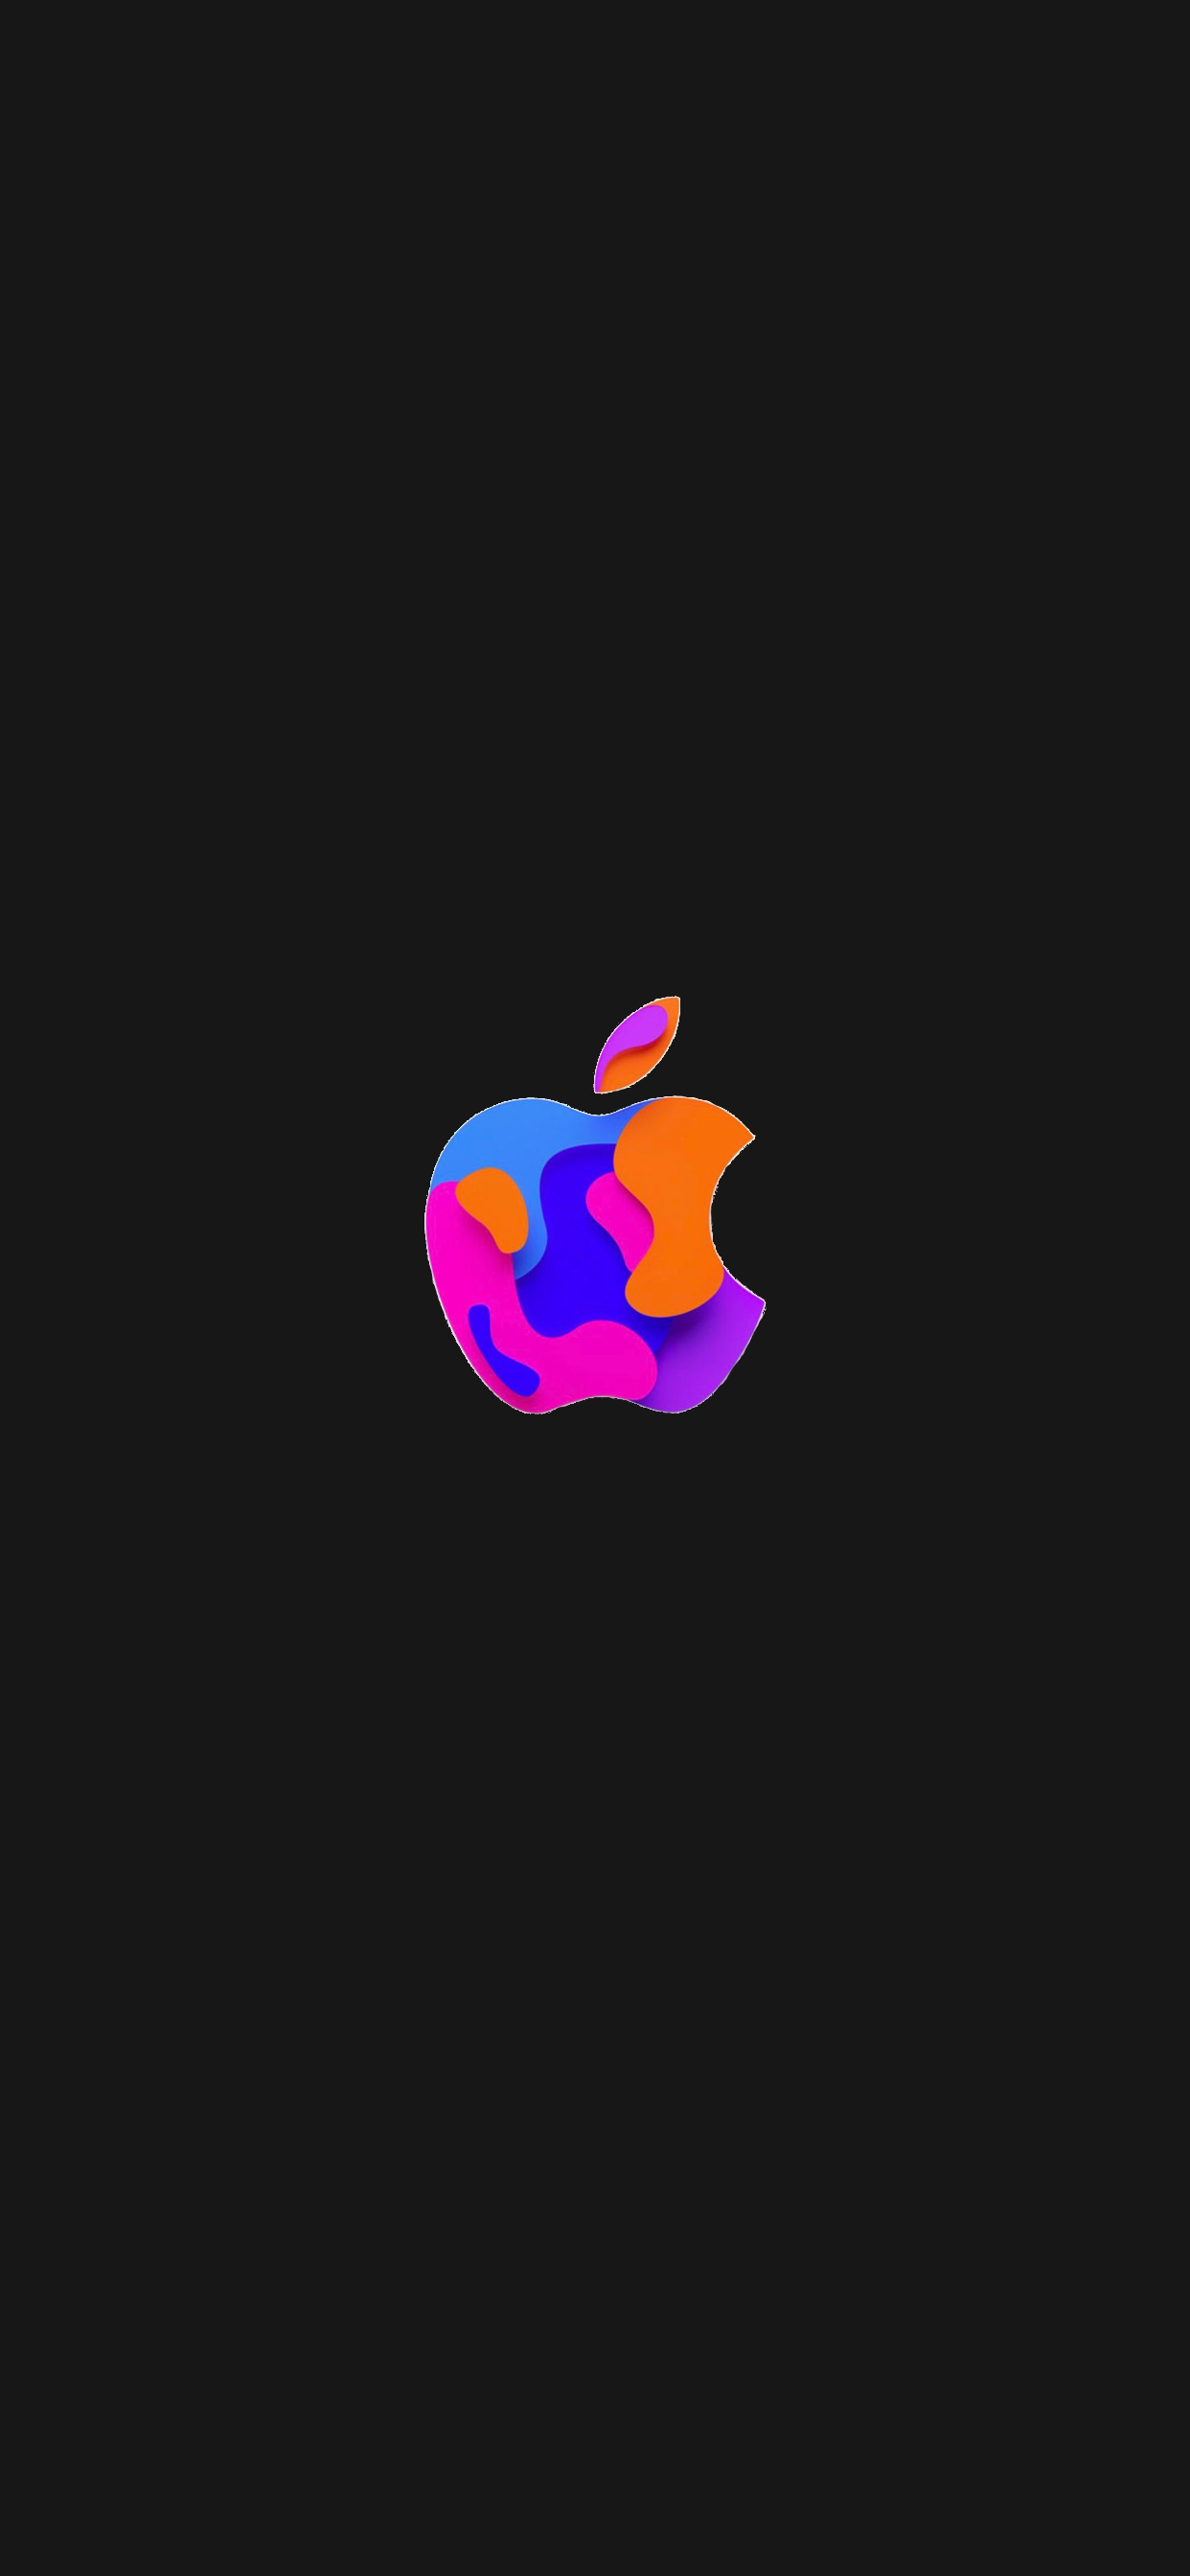 Pin By Adolfo Vera On Iphone Xr Wallpapers Apple Wallpaper Apple Logo Wallpaper Iphone Wallpaper